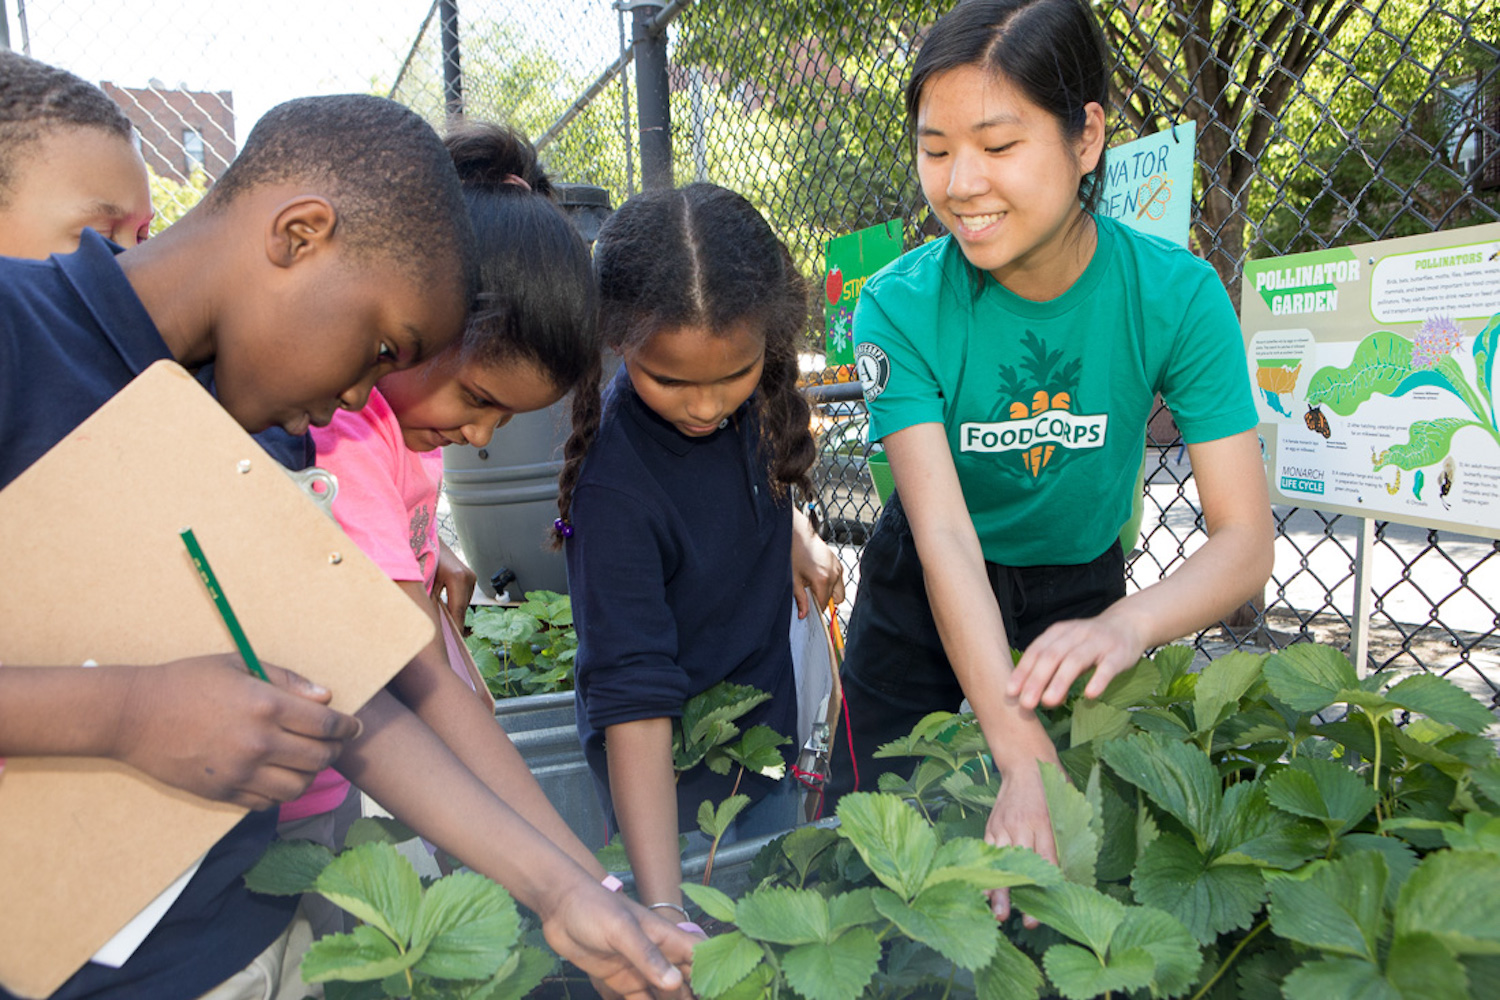 FoodCorps service members continue to serve students as they conduct food and nutrition education online and assist with emergency school meals